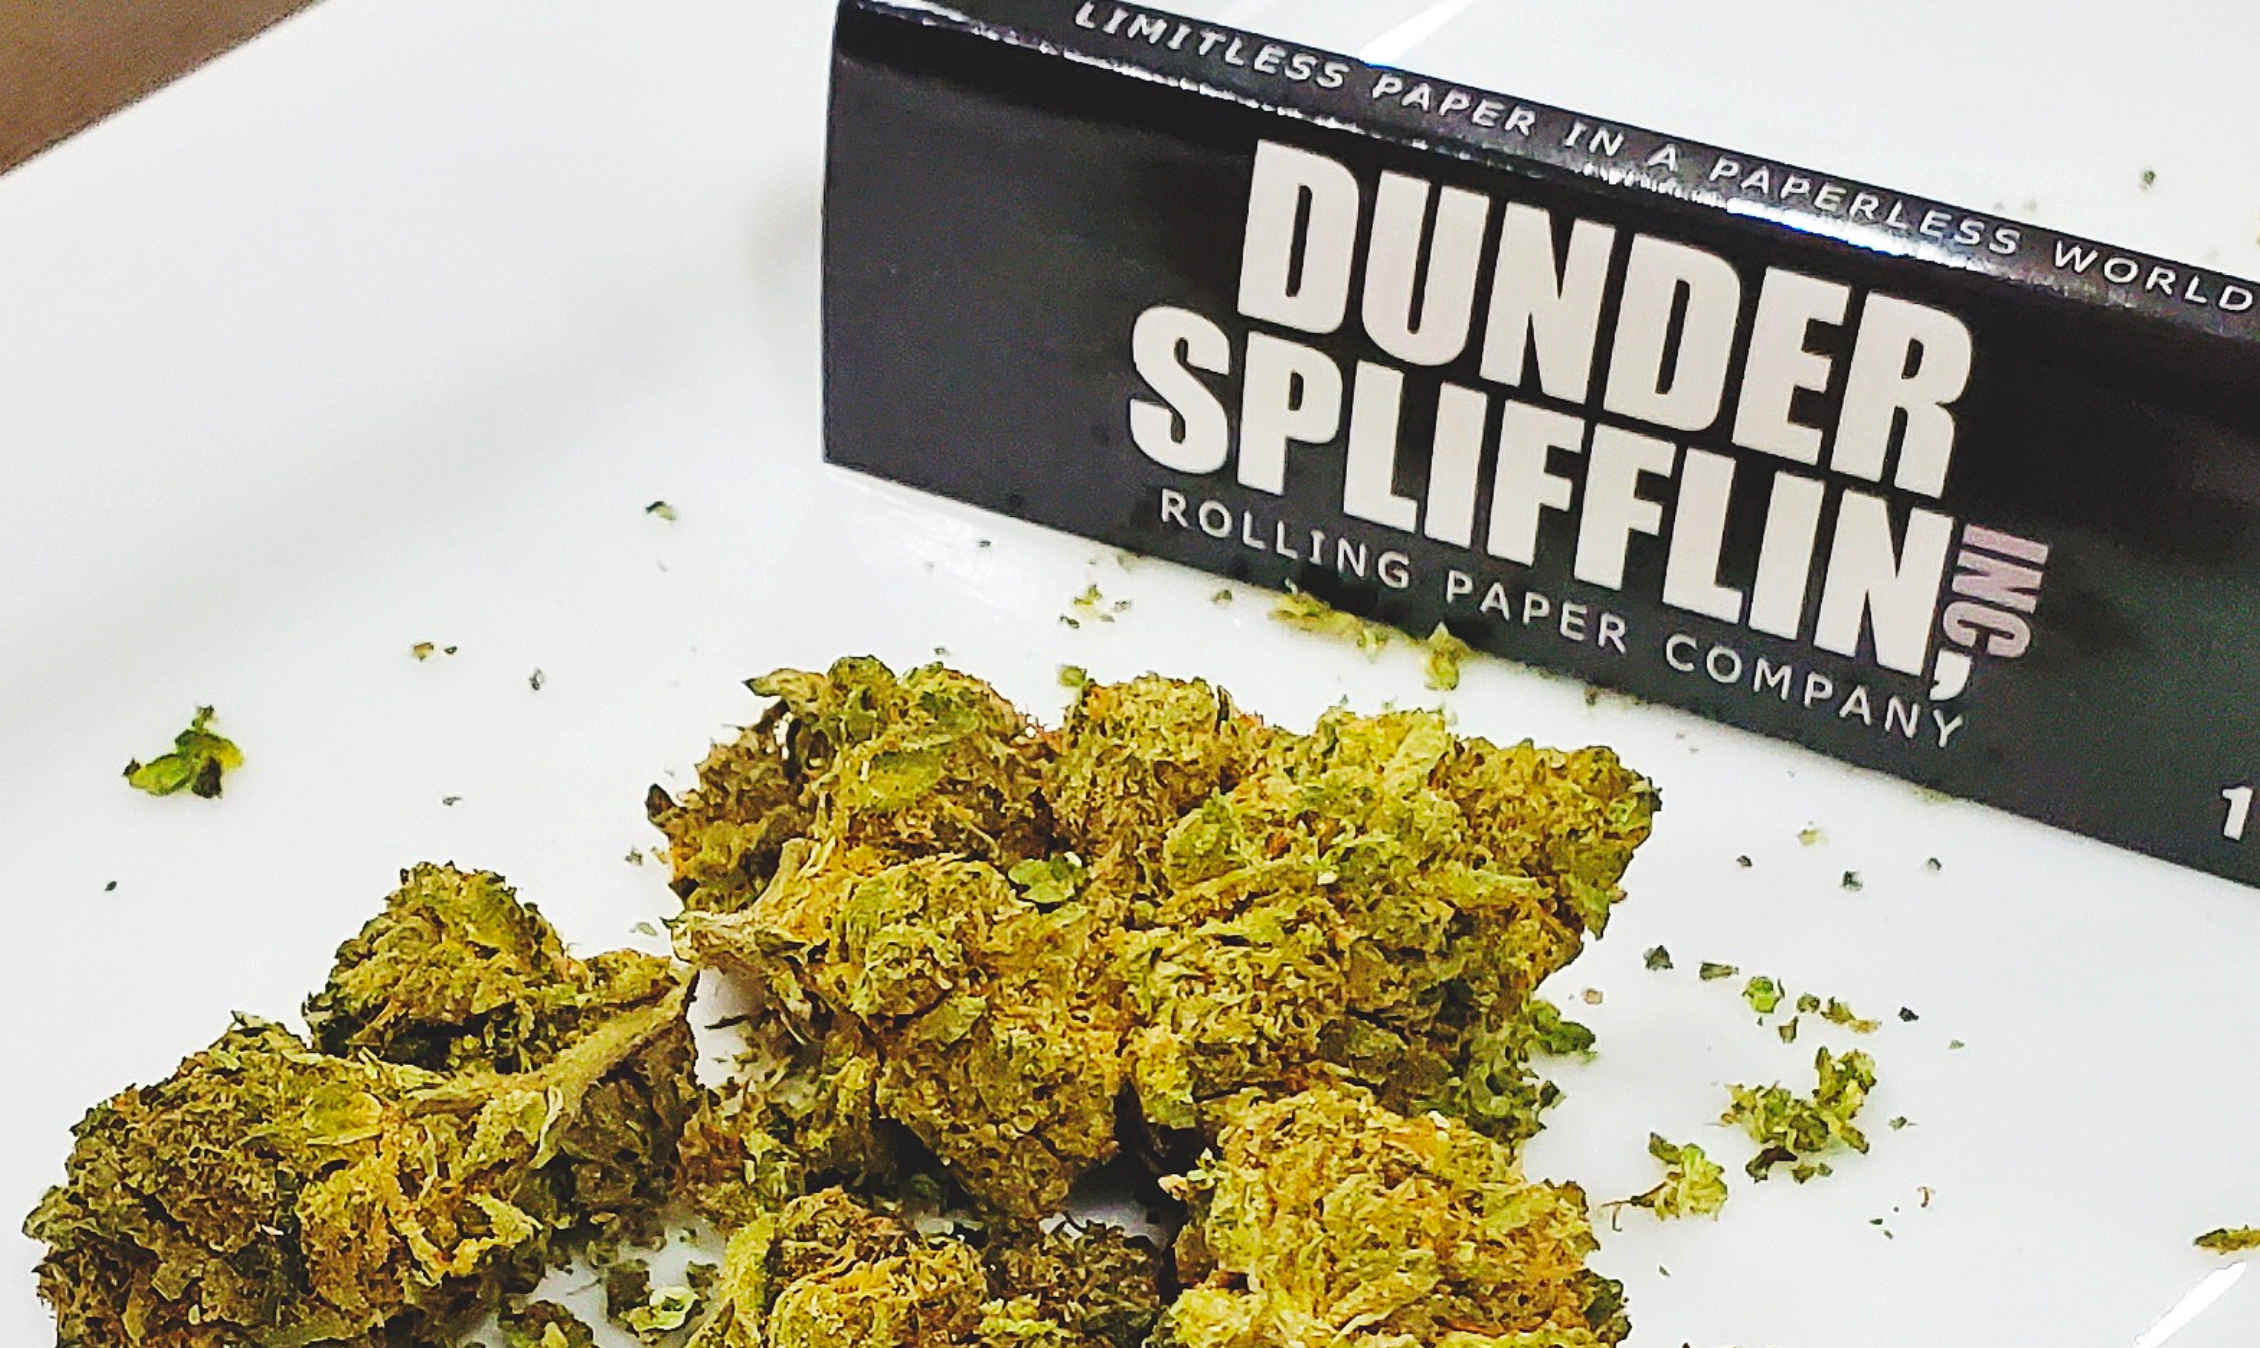 Dunder Splifflin - The Office, but wrapping papers for your 🌿